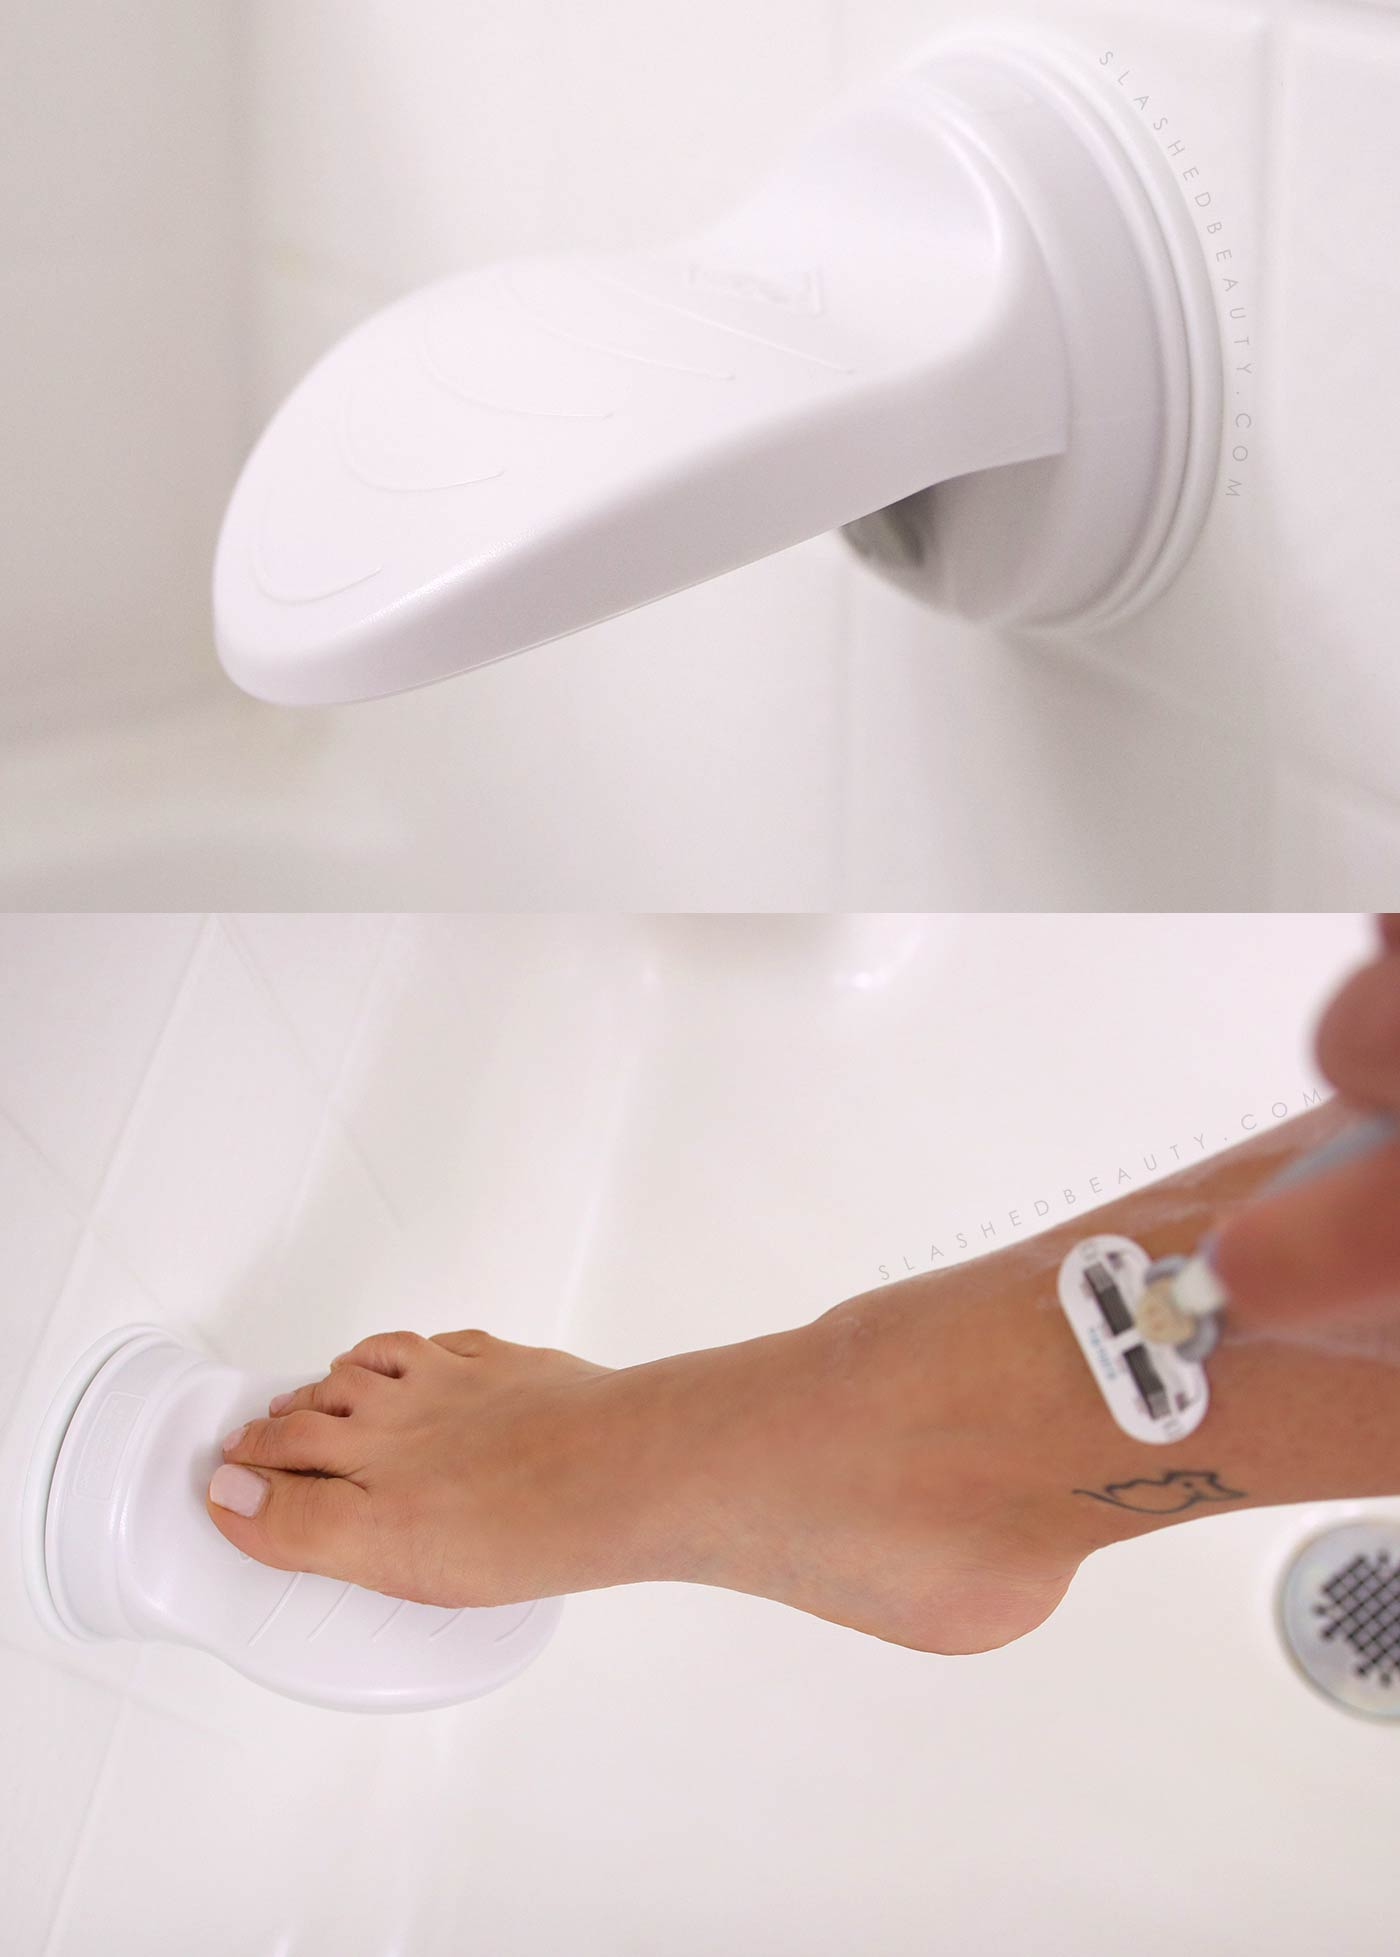 Suction Cup Foot Rest for Shaving in Small Shower | 3 Must-Have Shower Accessories for Small Spaces from Amazon | Slashed Beauty